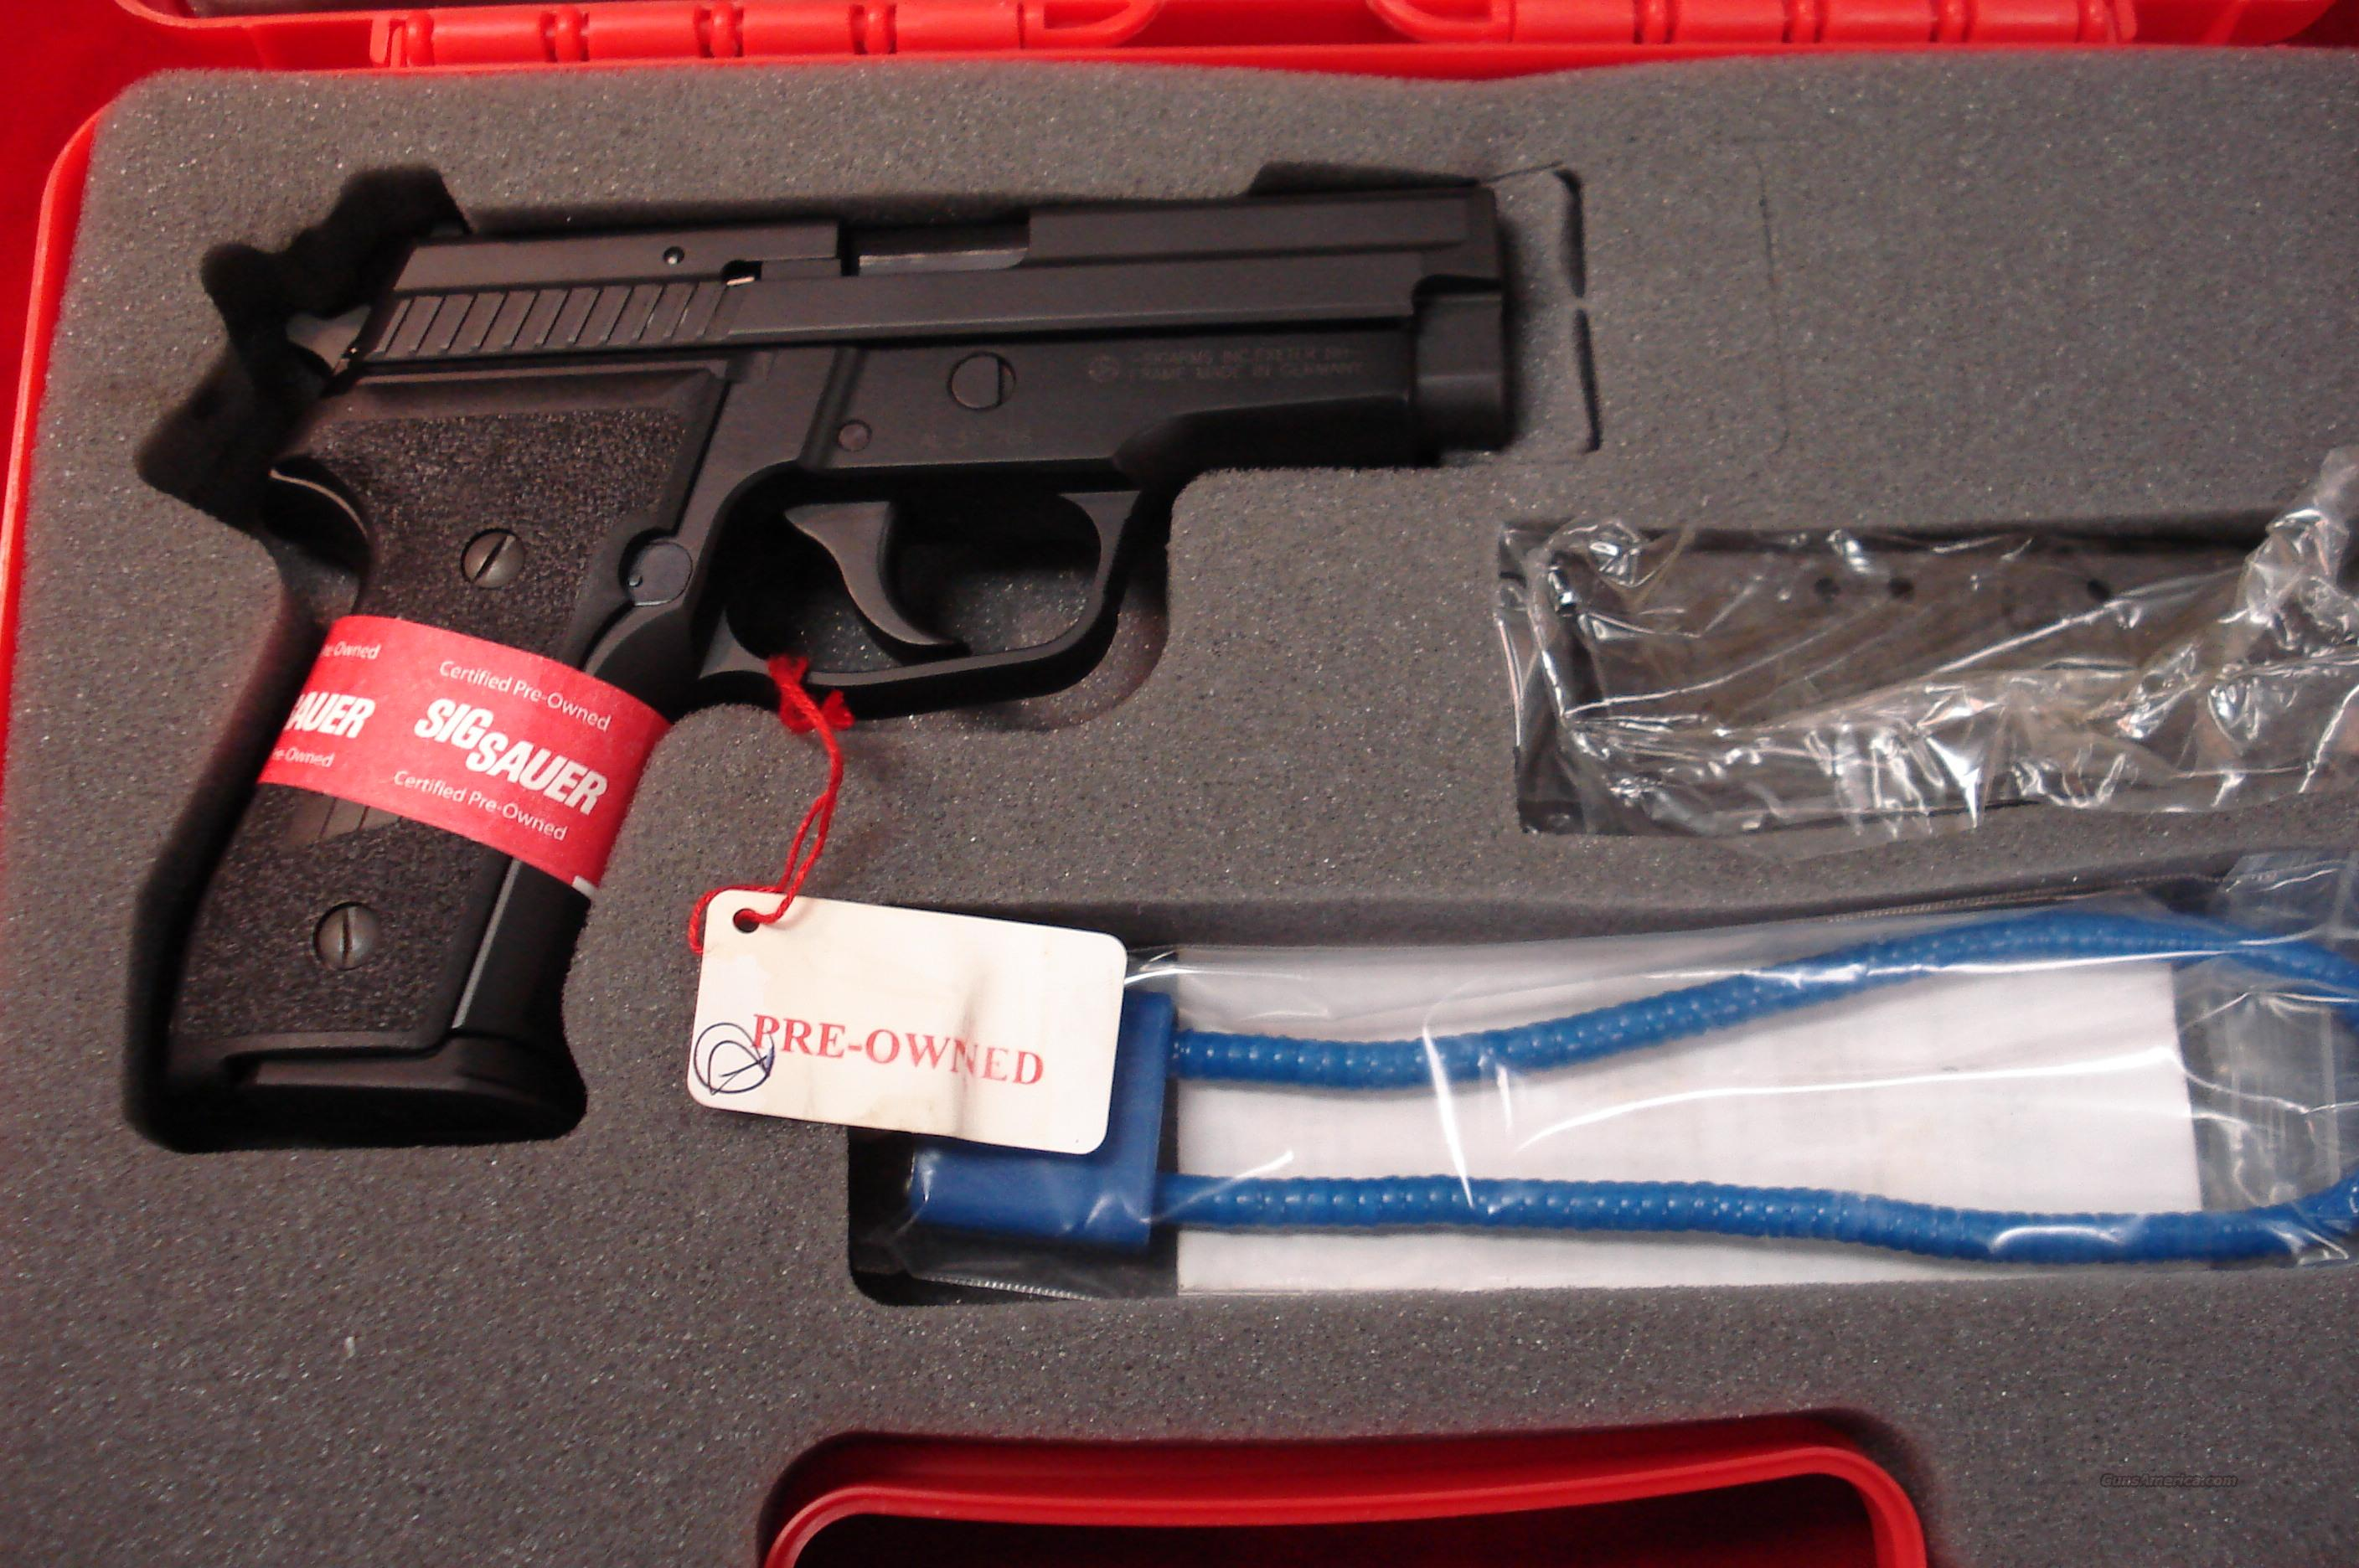 SIG SAUER P229 40CAL. CERTIFIED PREOWNED   Guns > Pistols > Sig - Sauer/Sigarms Pistols > P229